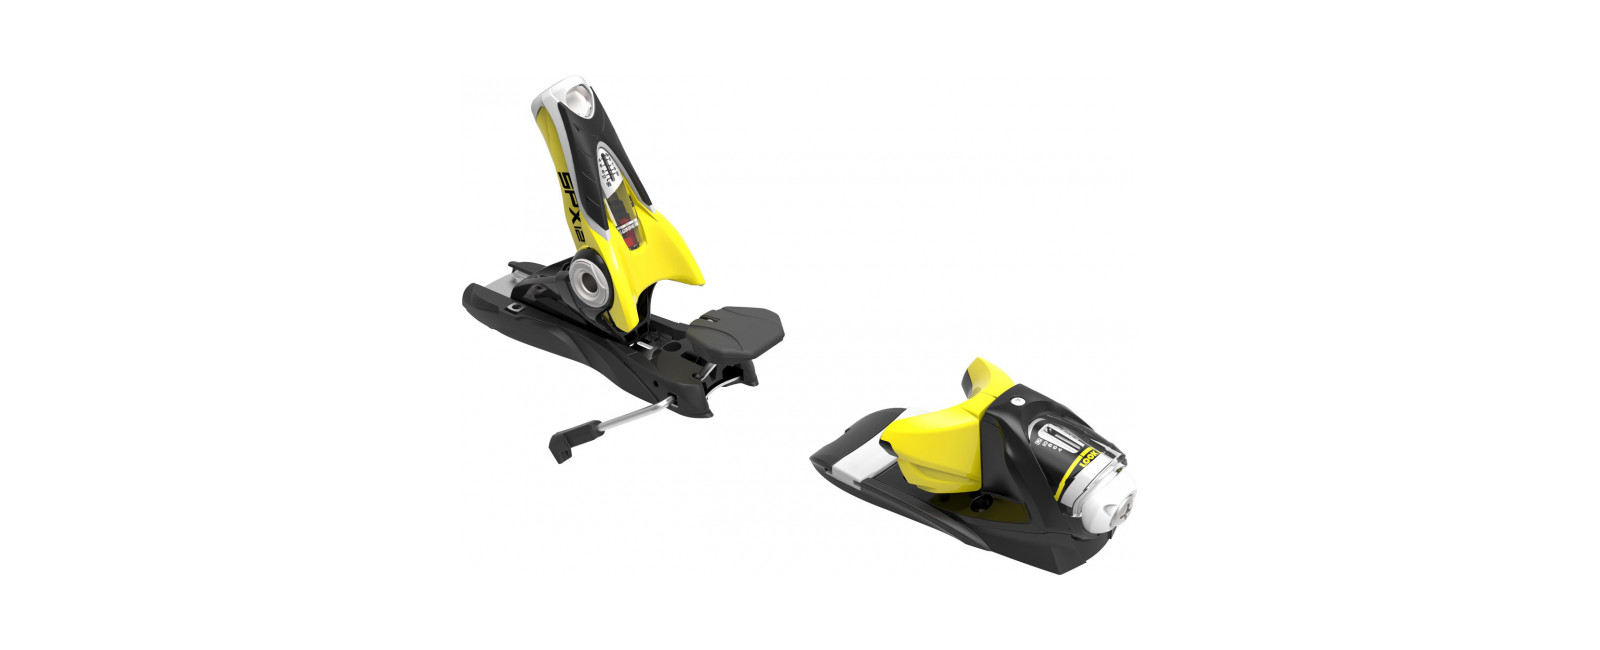 bindings SPX 12 DUAL WTR B90 BLACK YELLOW